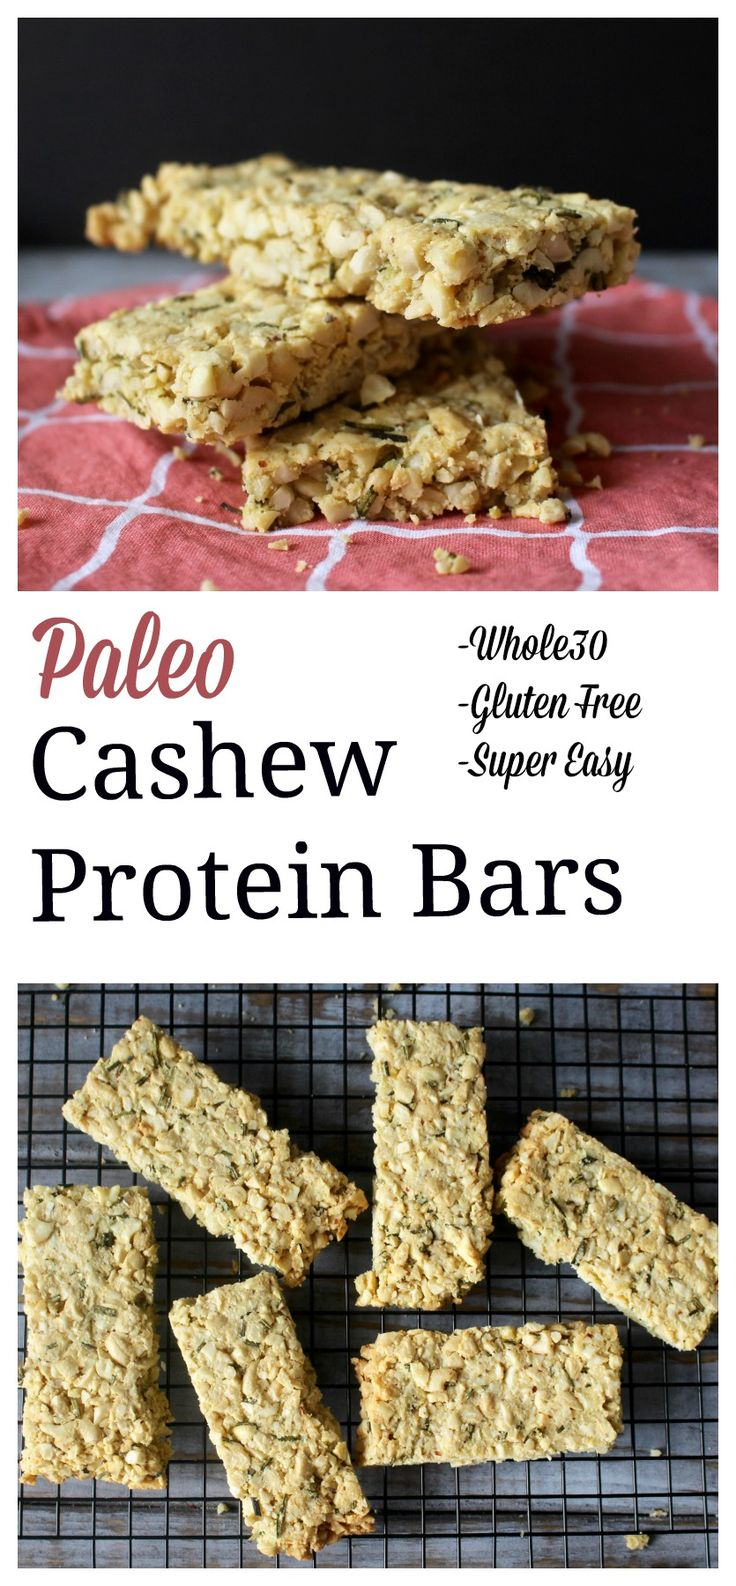 Paleo Cashew Protein Bars- super easy to make and so delicious! Whole30, gluten free, and low carb!